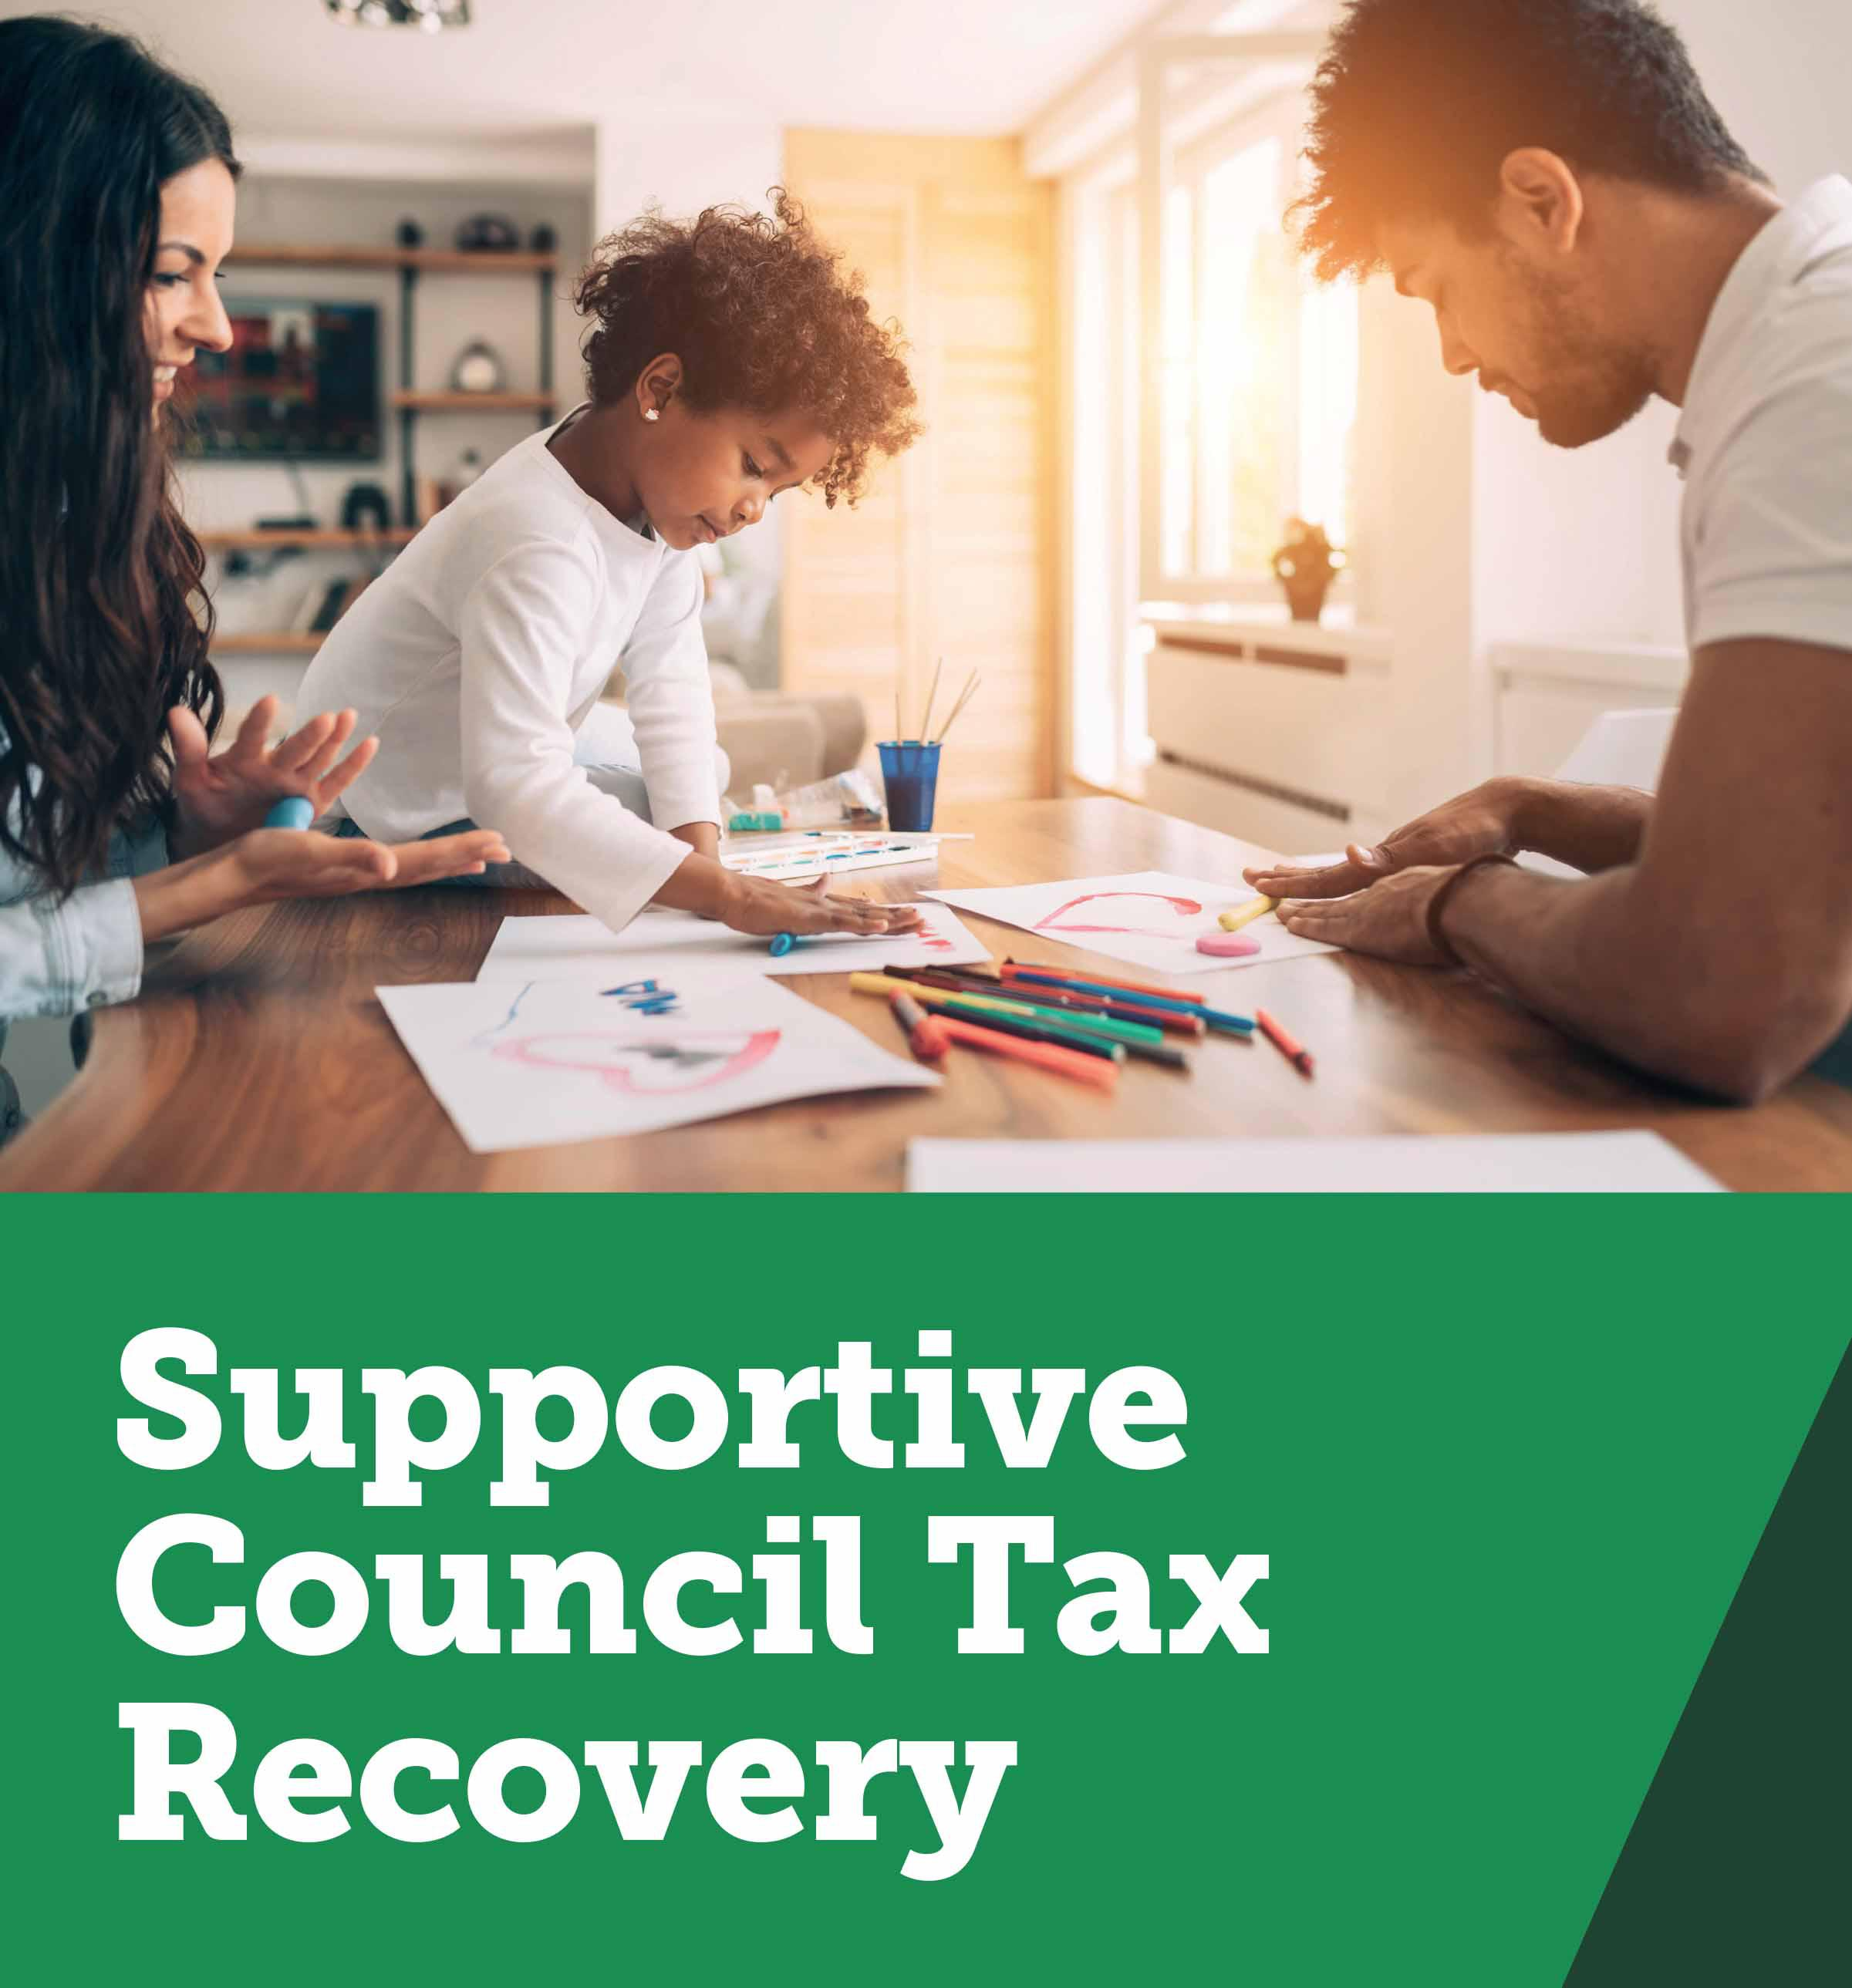 Supportive Council Tax Recovery